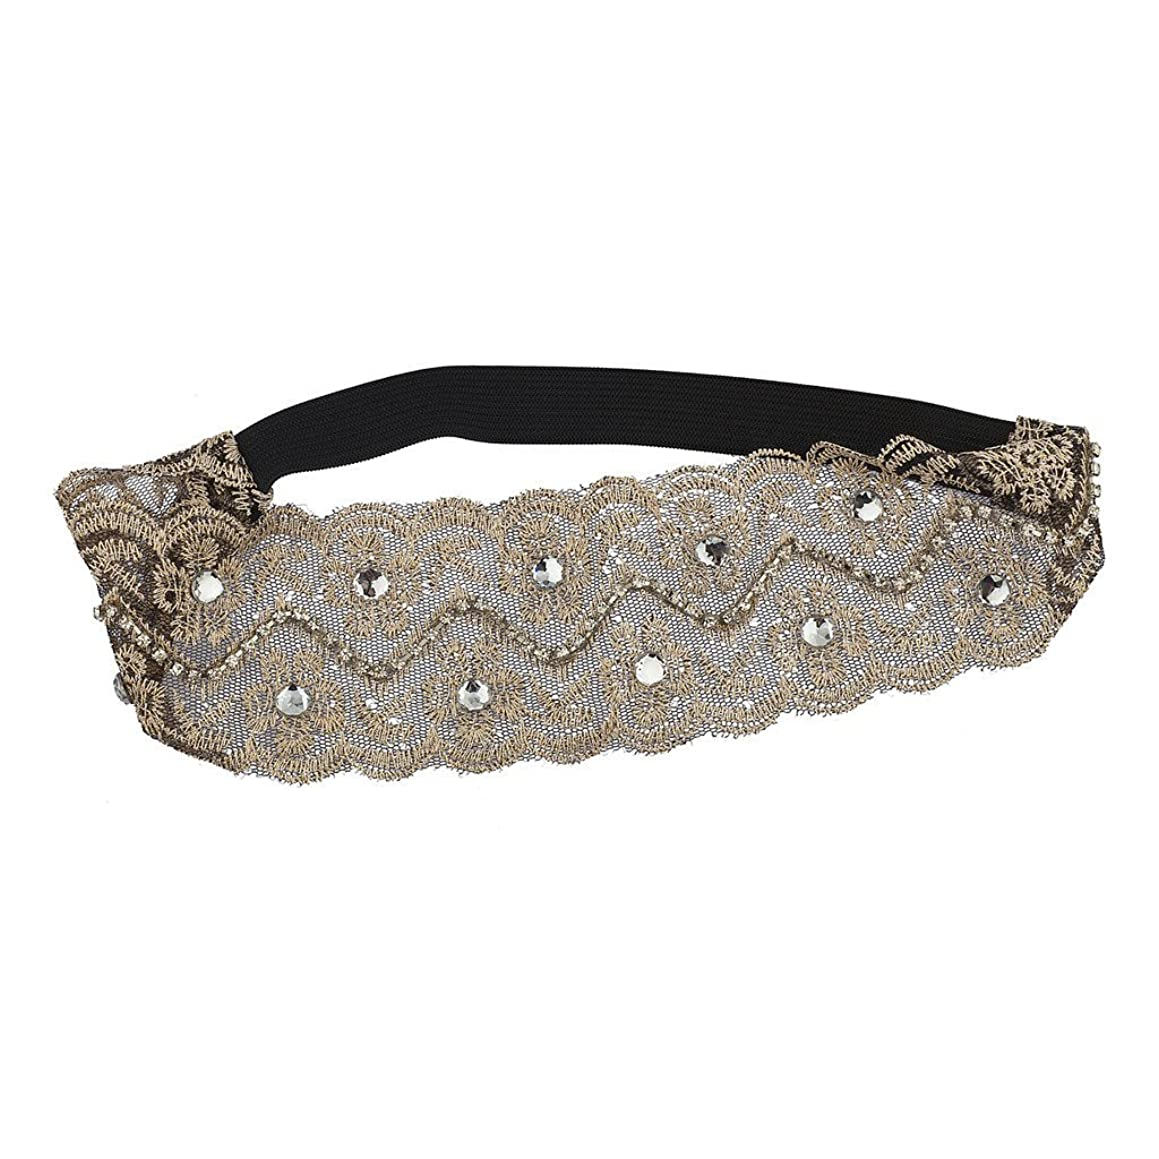 Lux Accessories Nude Mesh Embroidered Lace and Glitz Head wrap Stretch Headband d41967822949